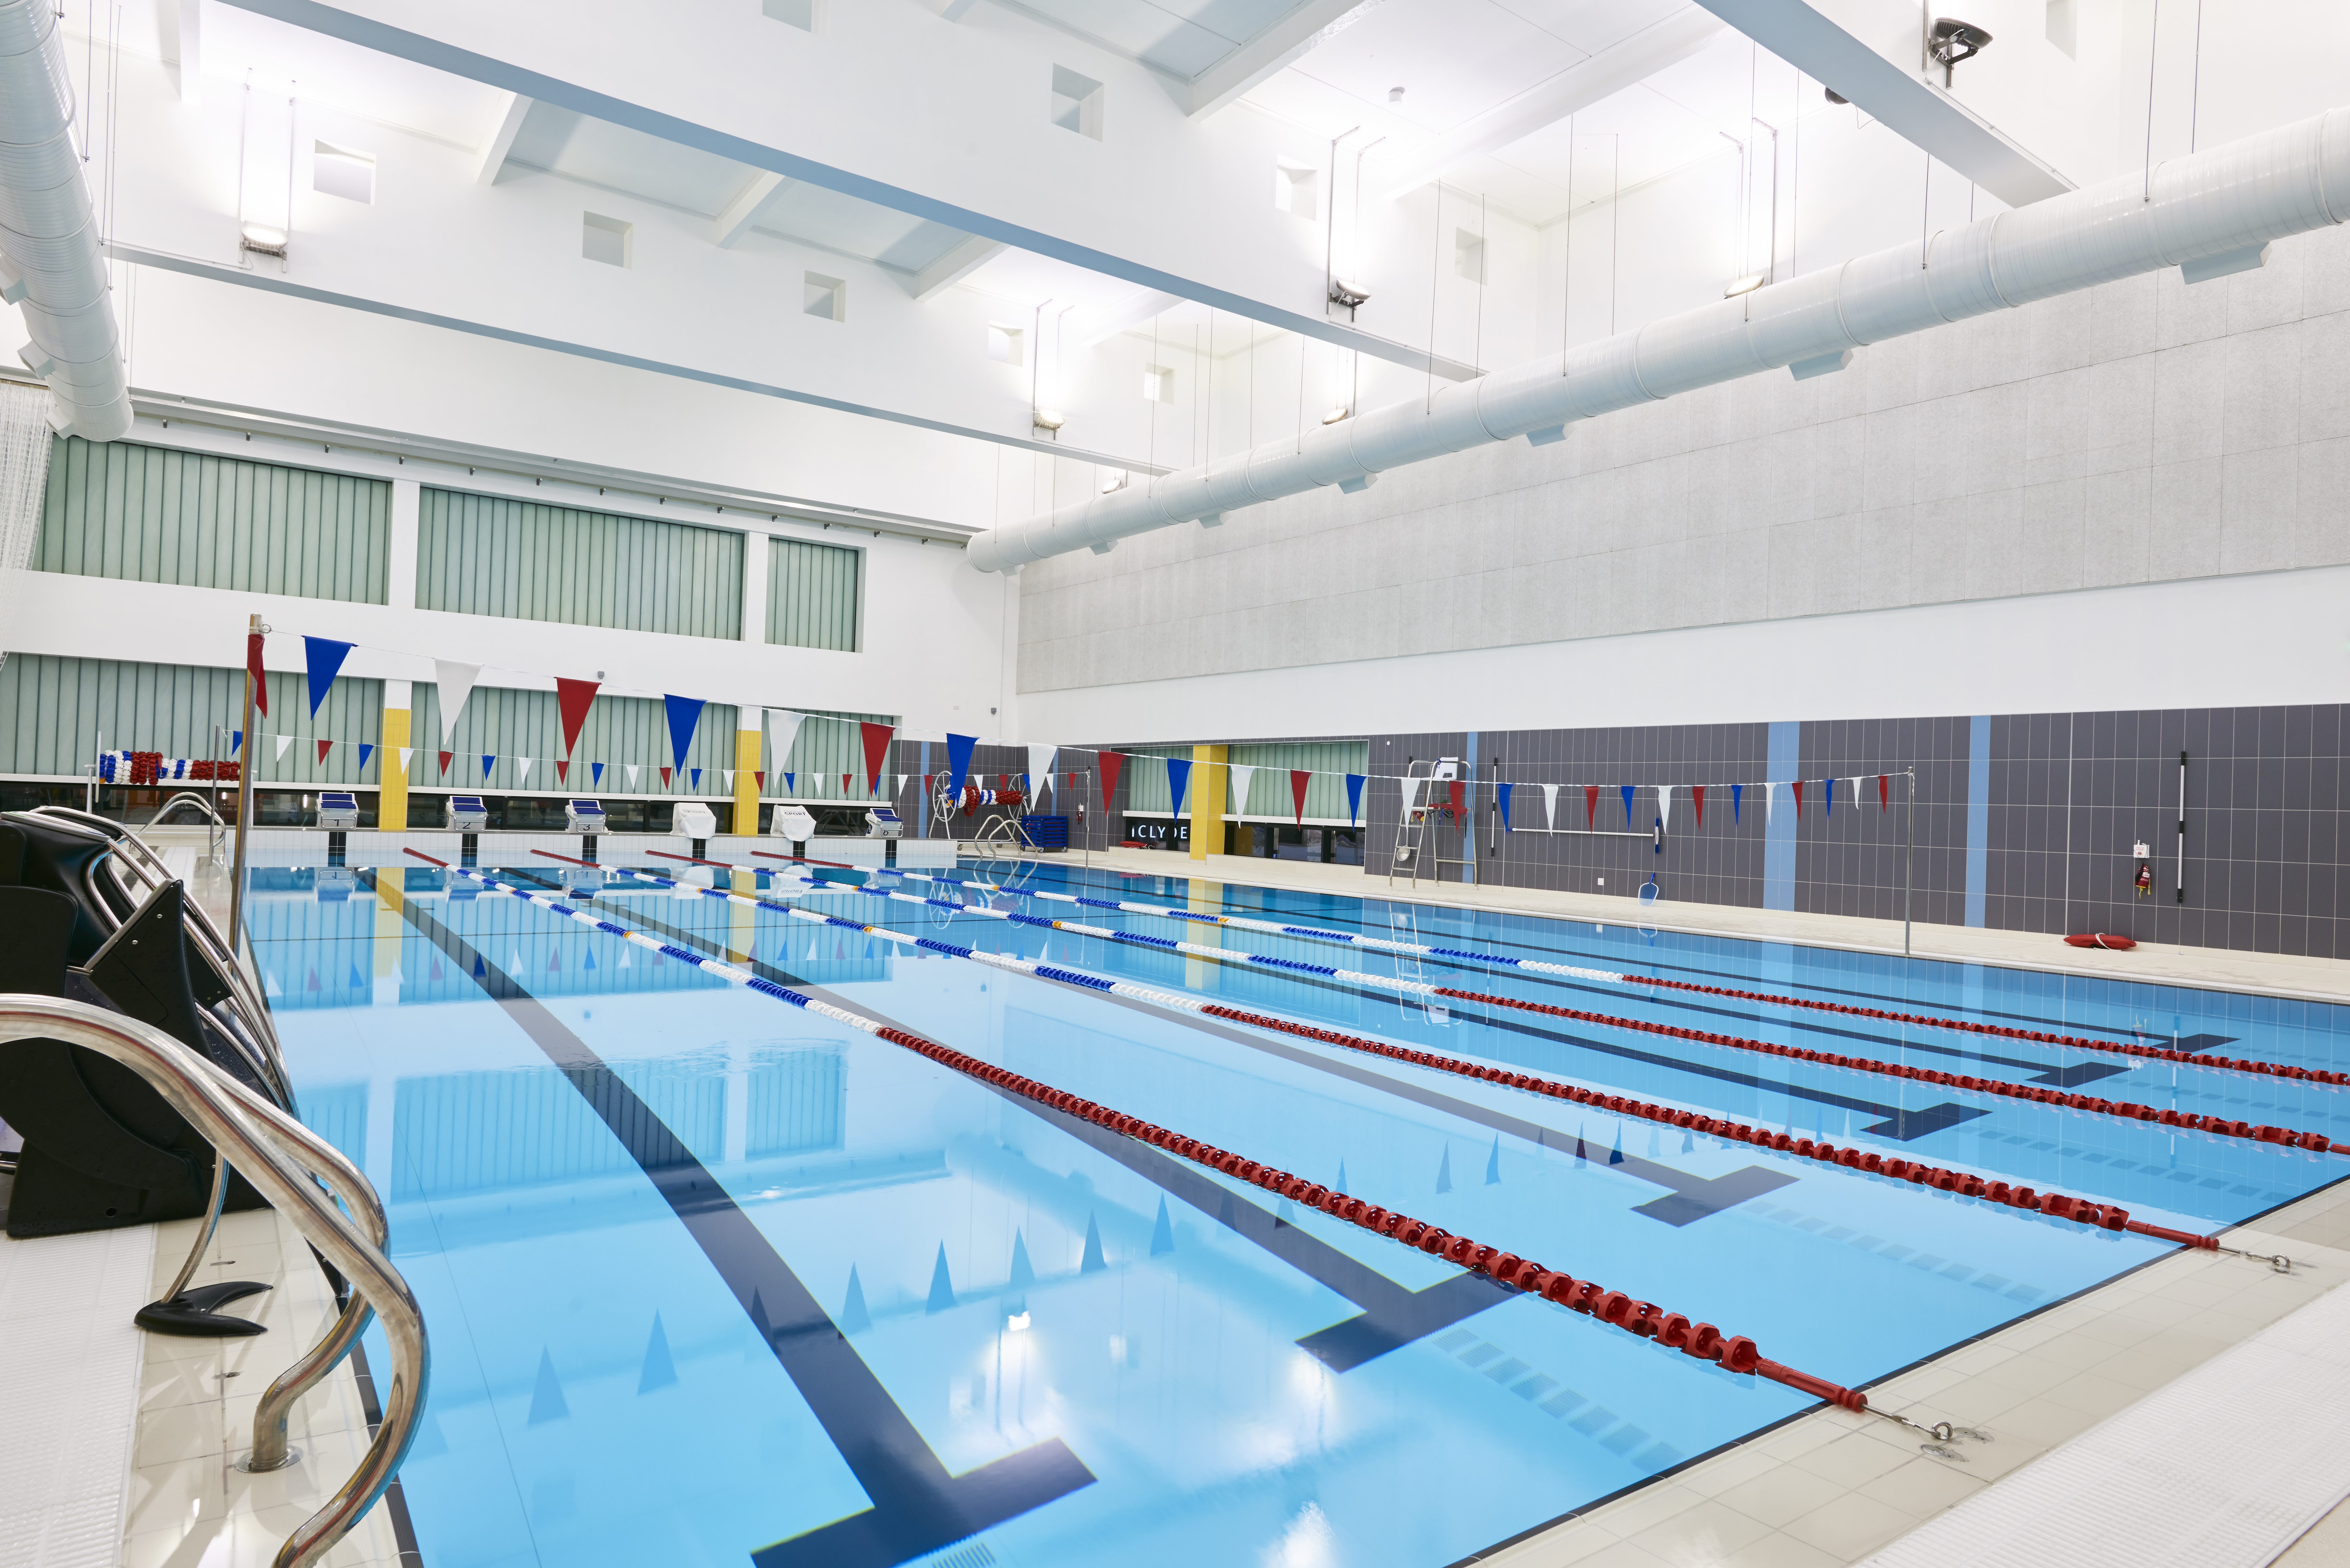 Swimming pool | University of Strathclyde